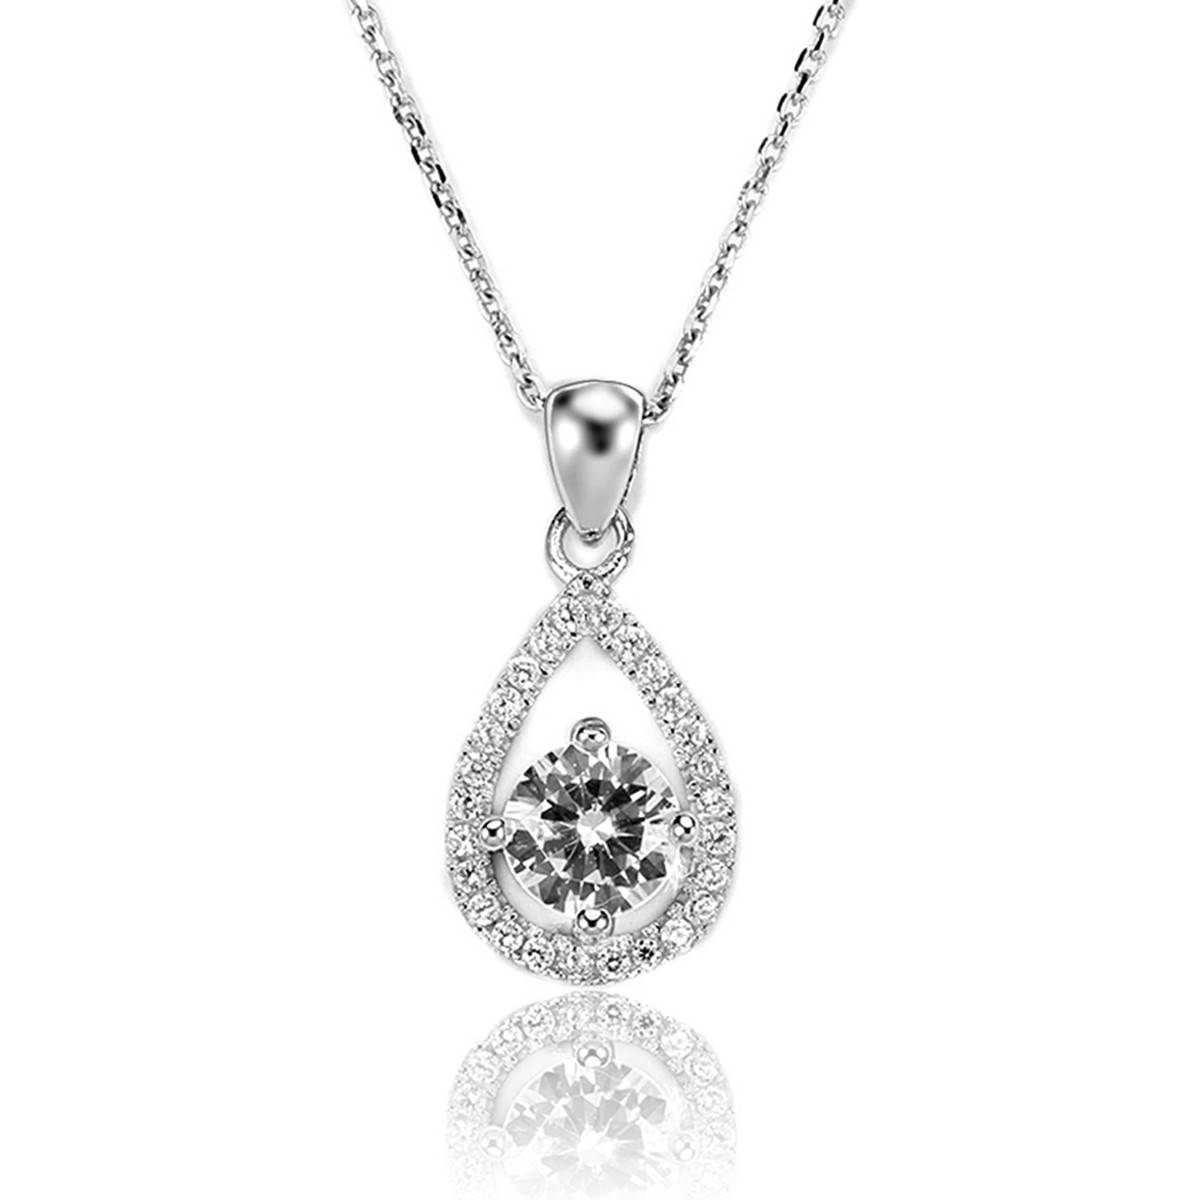 Pure Handmade Necklace China Wholesale Necklace Prong Setting Necklace with AAA Cubic 925 Sterling S